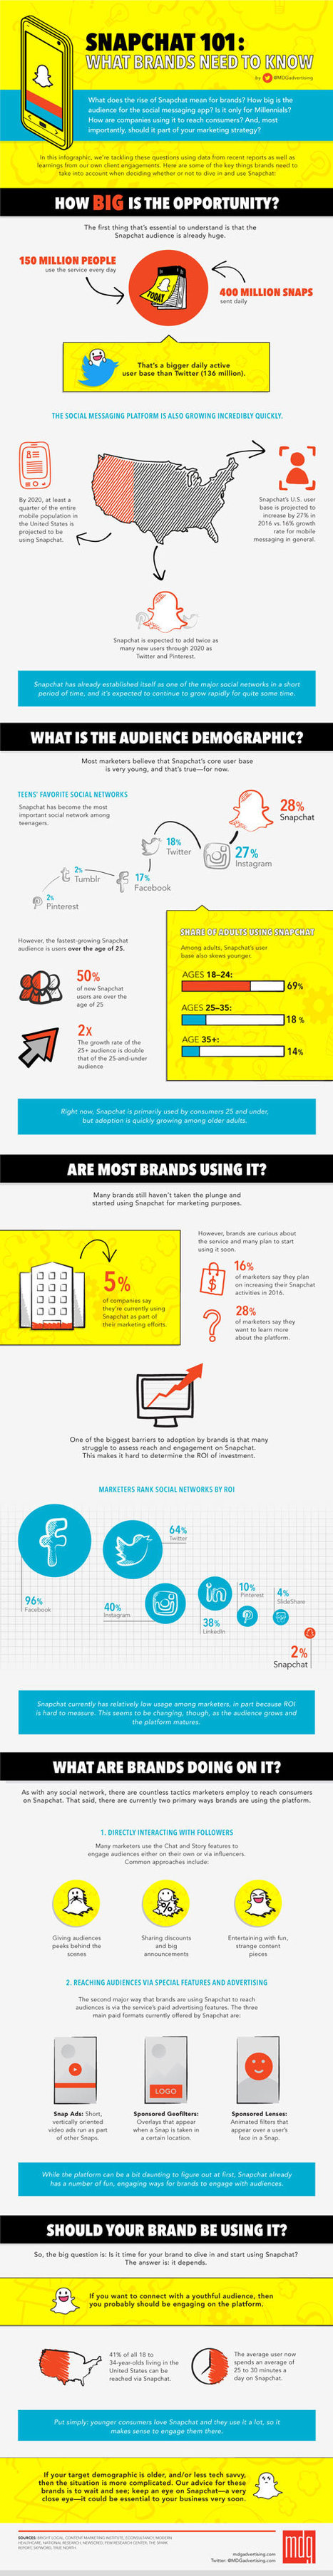 Snapchat 101: What Brands Need to Know #Infographic #snapchatmarketing | MarketingHits | Scoop.it